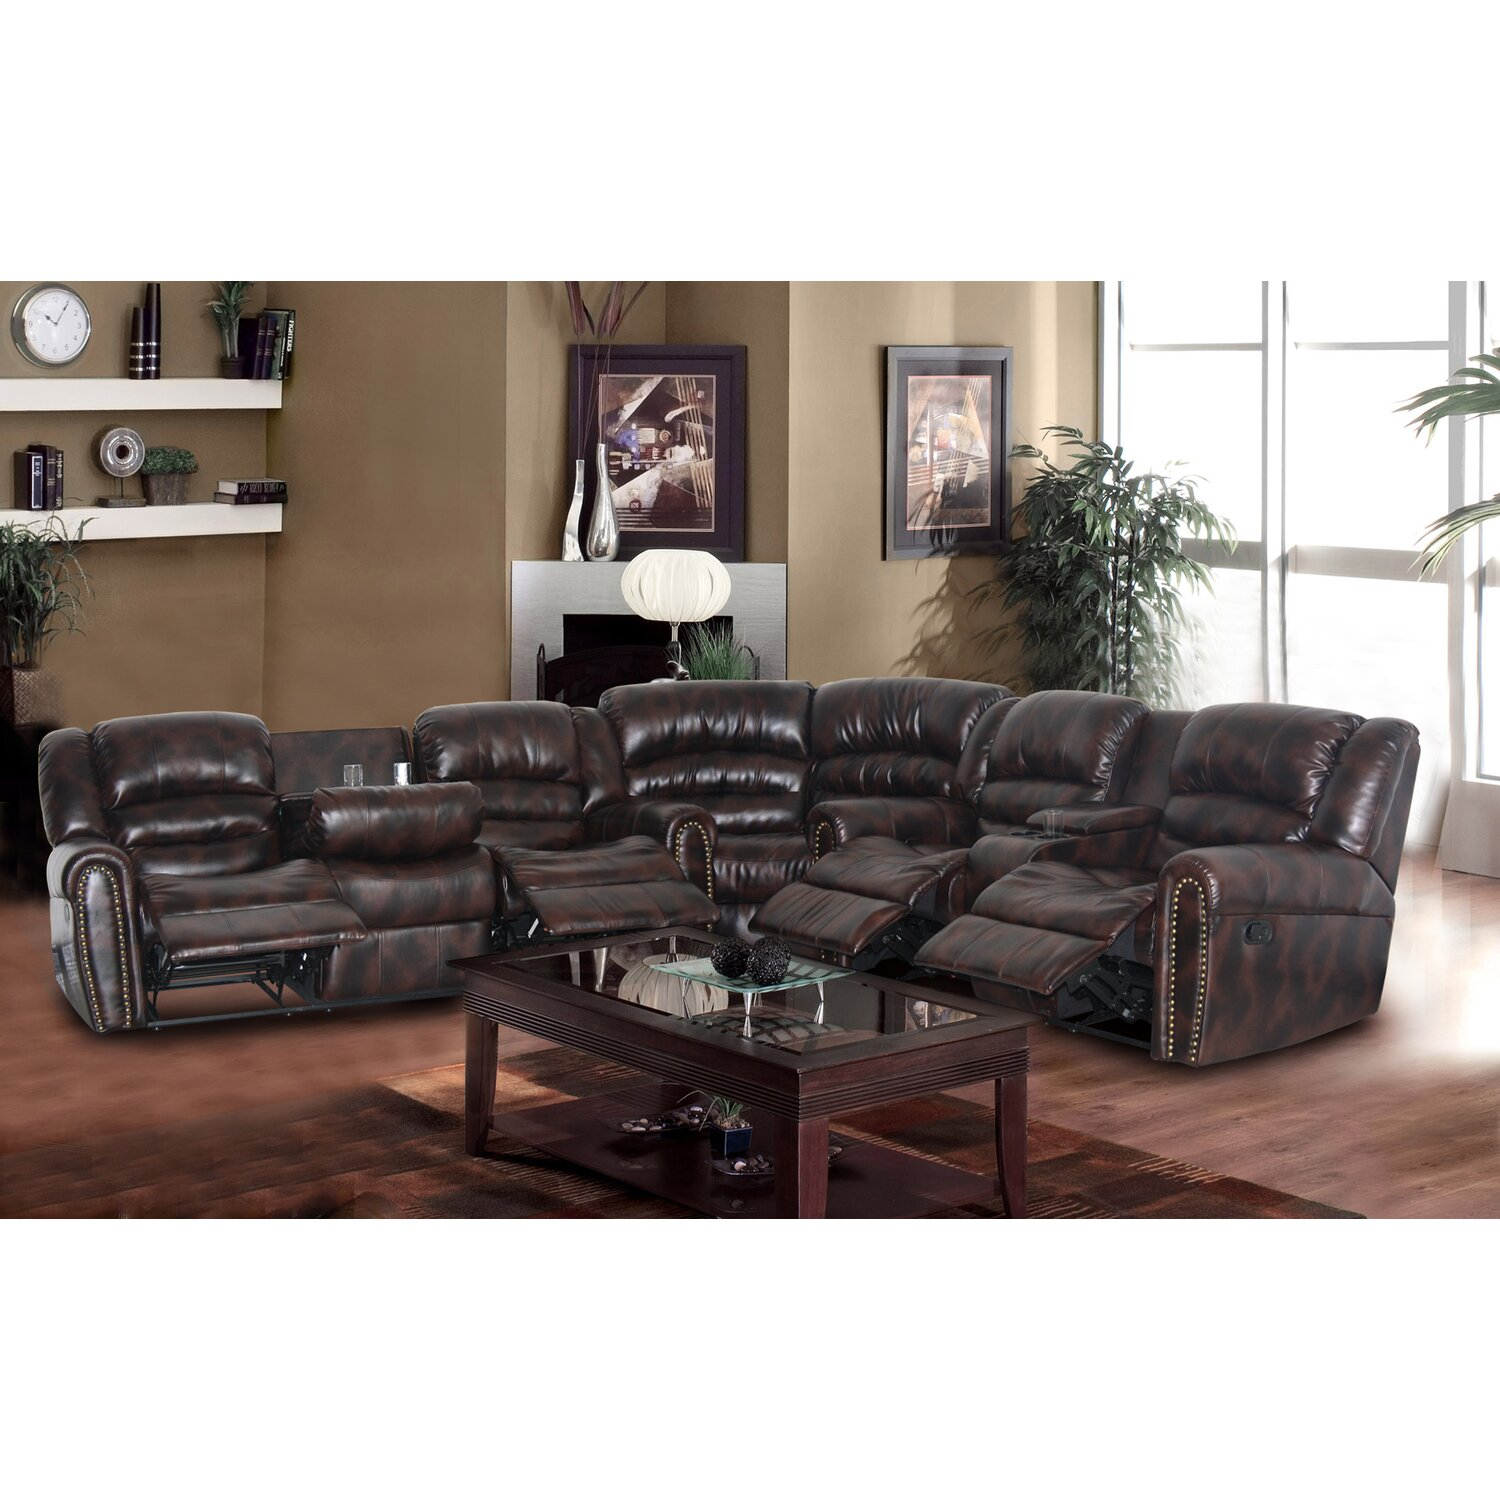 Sophy 3 Piece Brown Bonded Leather Reclining Living Room Sectional Sofa Set Gs4000 1500